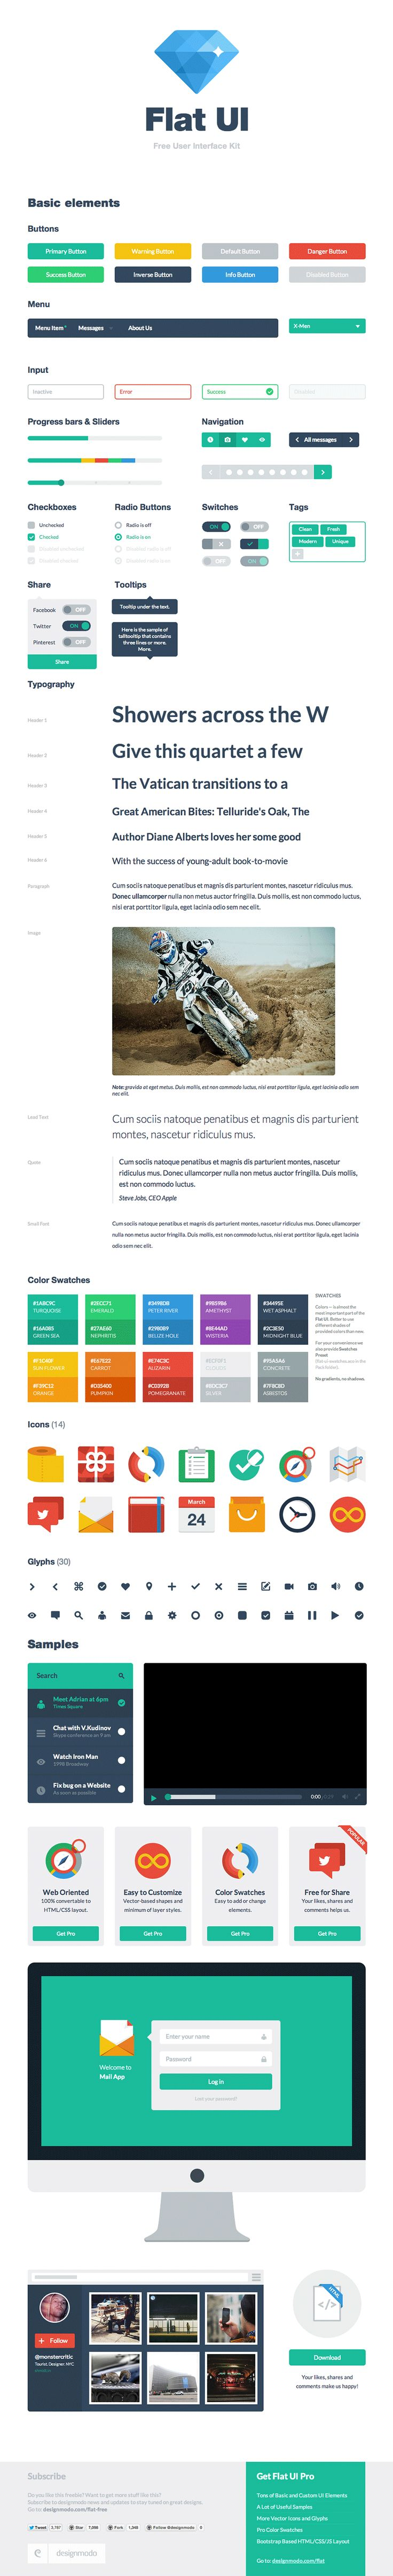 logo style guide example awesome graphic library